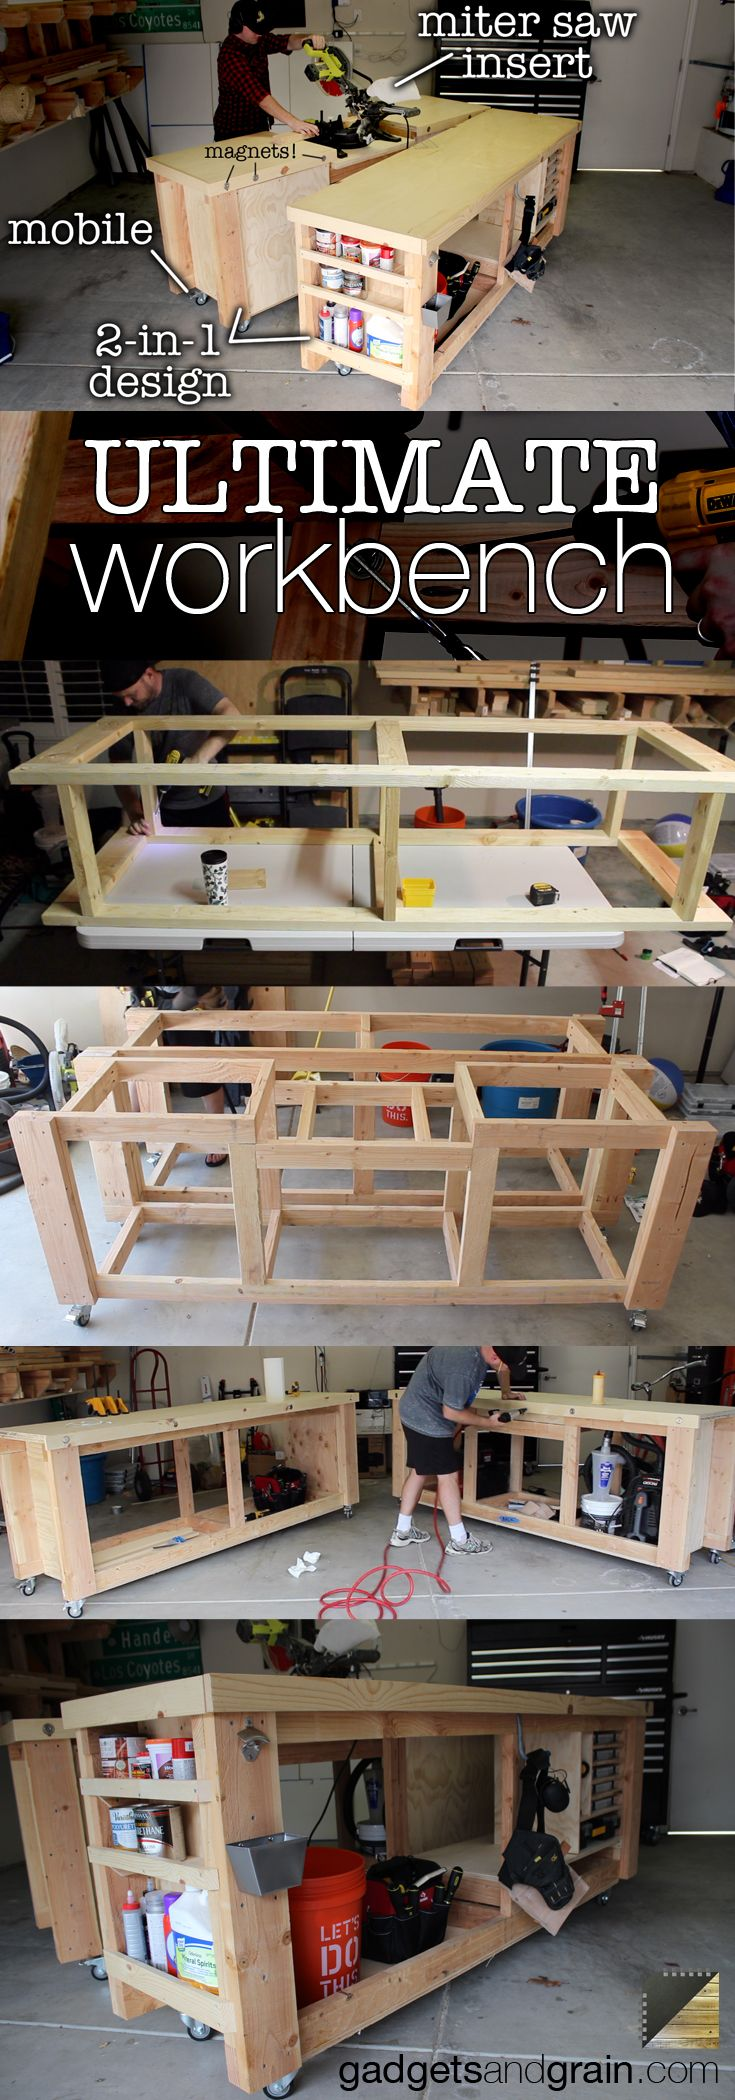 Diy Mobile Modular Workbench To Bring Your Shop To The Next